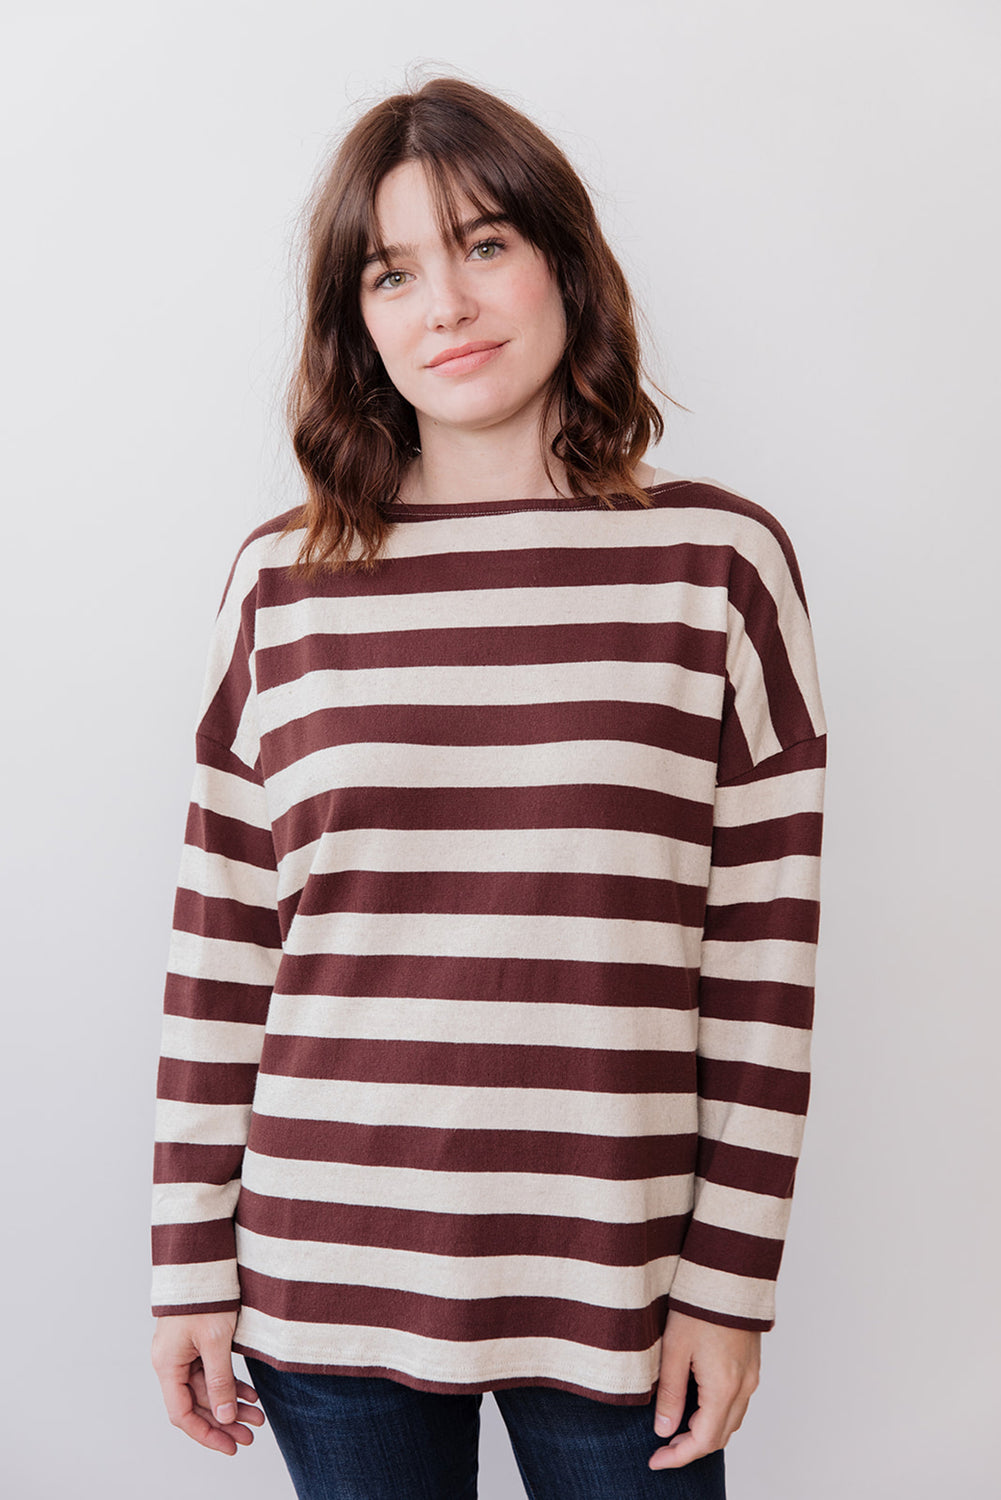 Knit Pullover, Striped